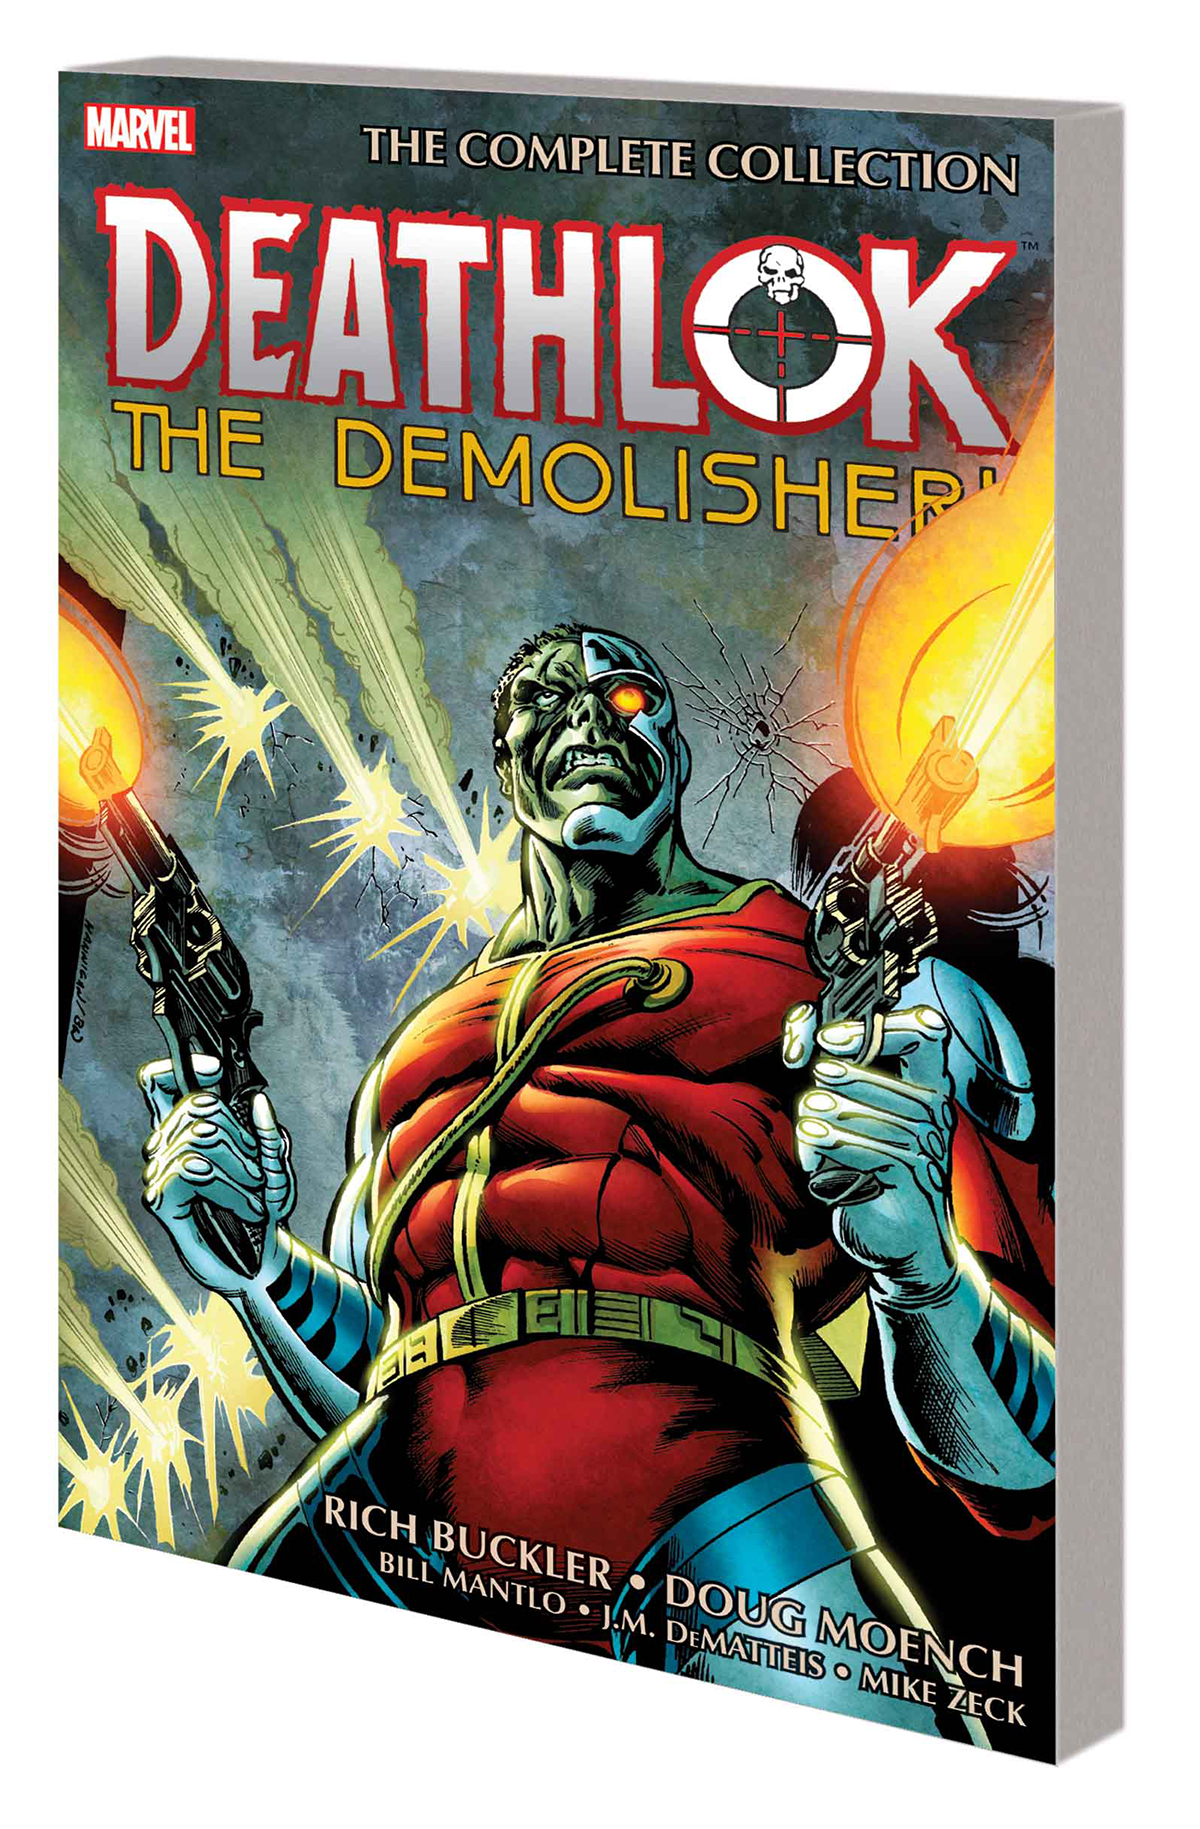 DEATHLOK DEMOLISHER TP COMPLETE COLLECTION